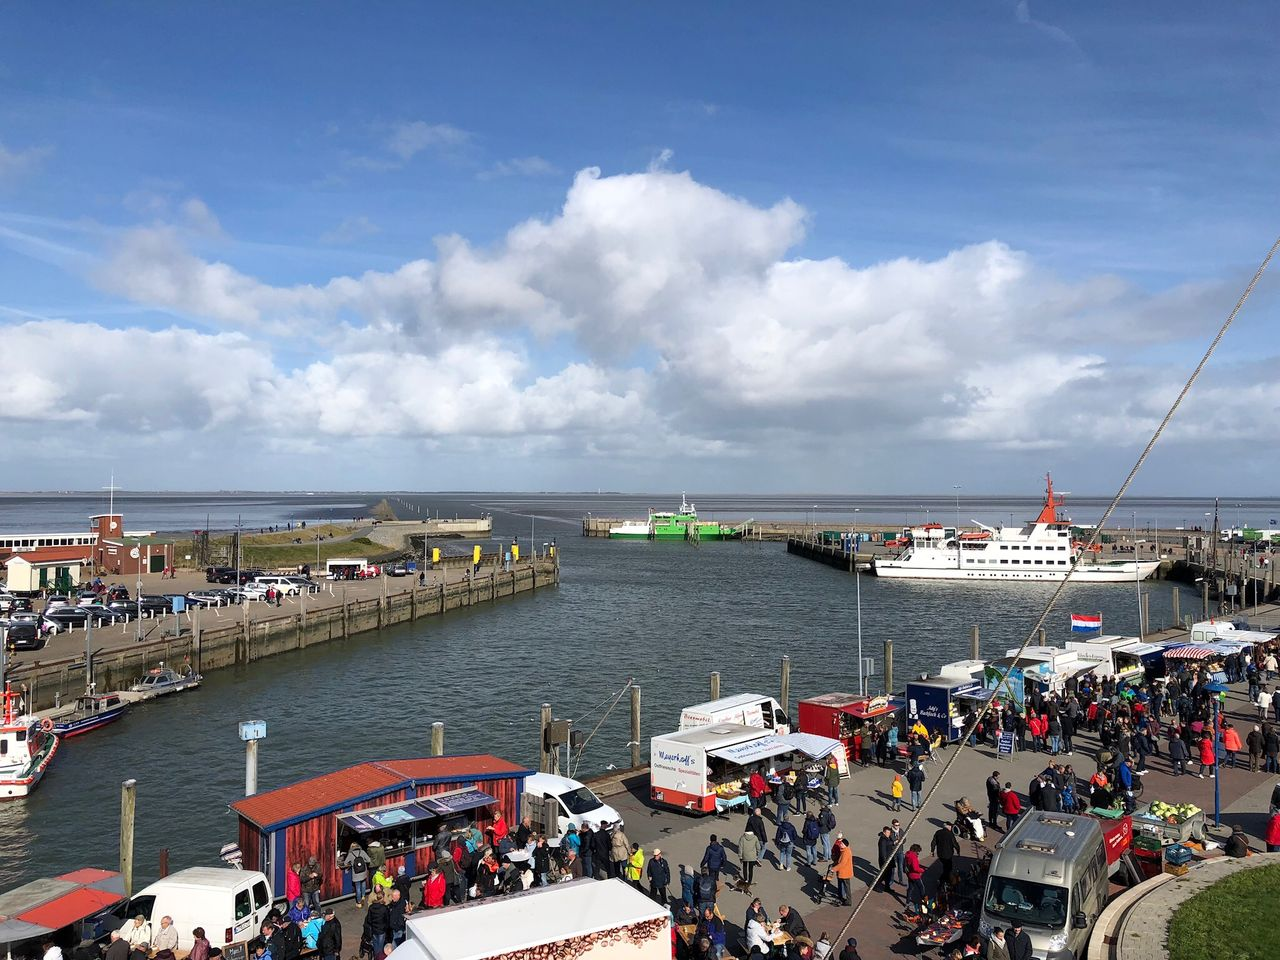 water, transportation, nautical vessel, cloud - sky, sky, mode of transportation, sea, group of people, large group of people, day, high angle view, crowd, architecture, nature, real people, ship, travel, harbor, pier, outdoors, horizon over water, passenger craft